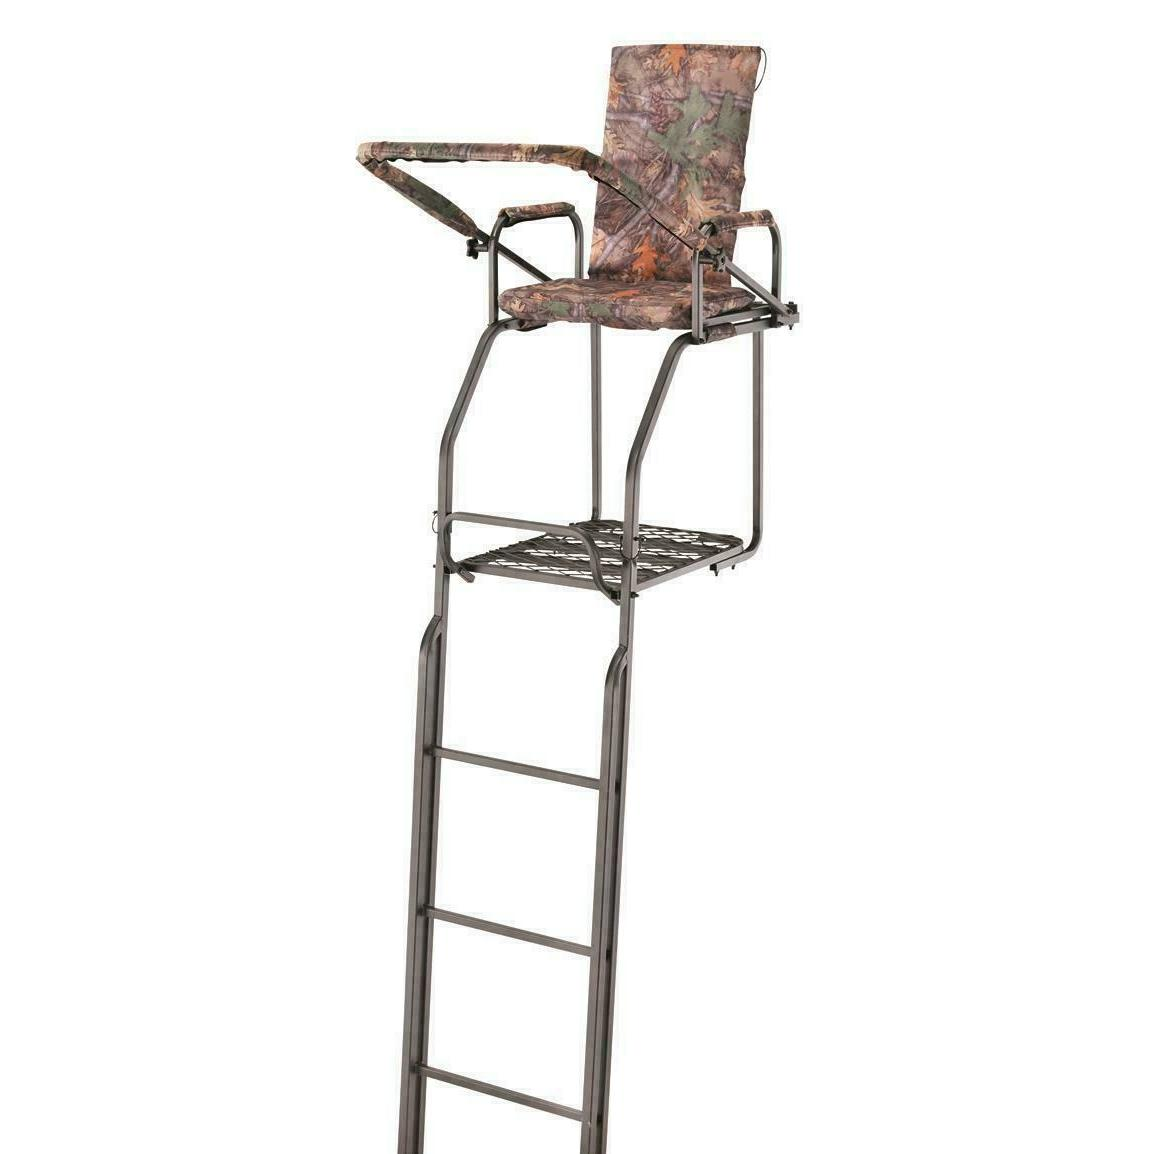 Guide ft Double Rail Tree Stand Deer Solid